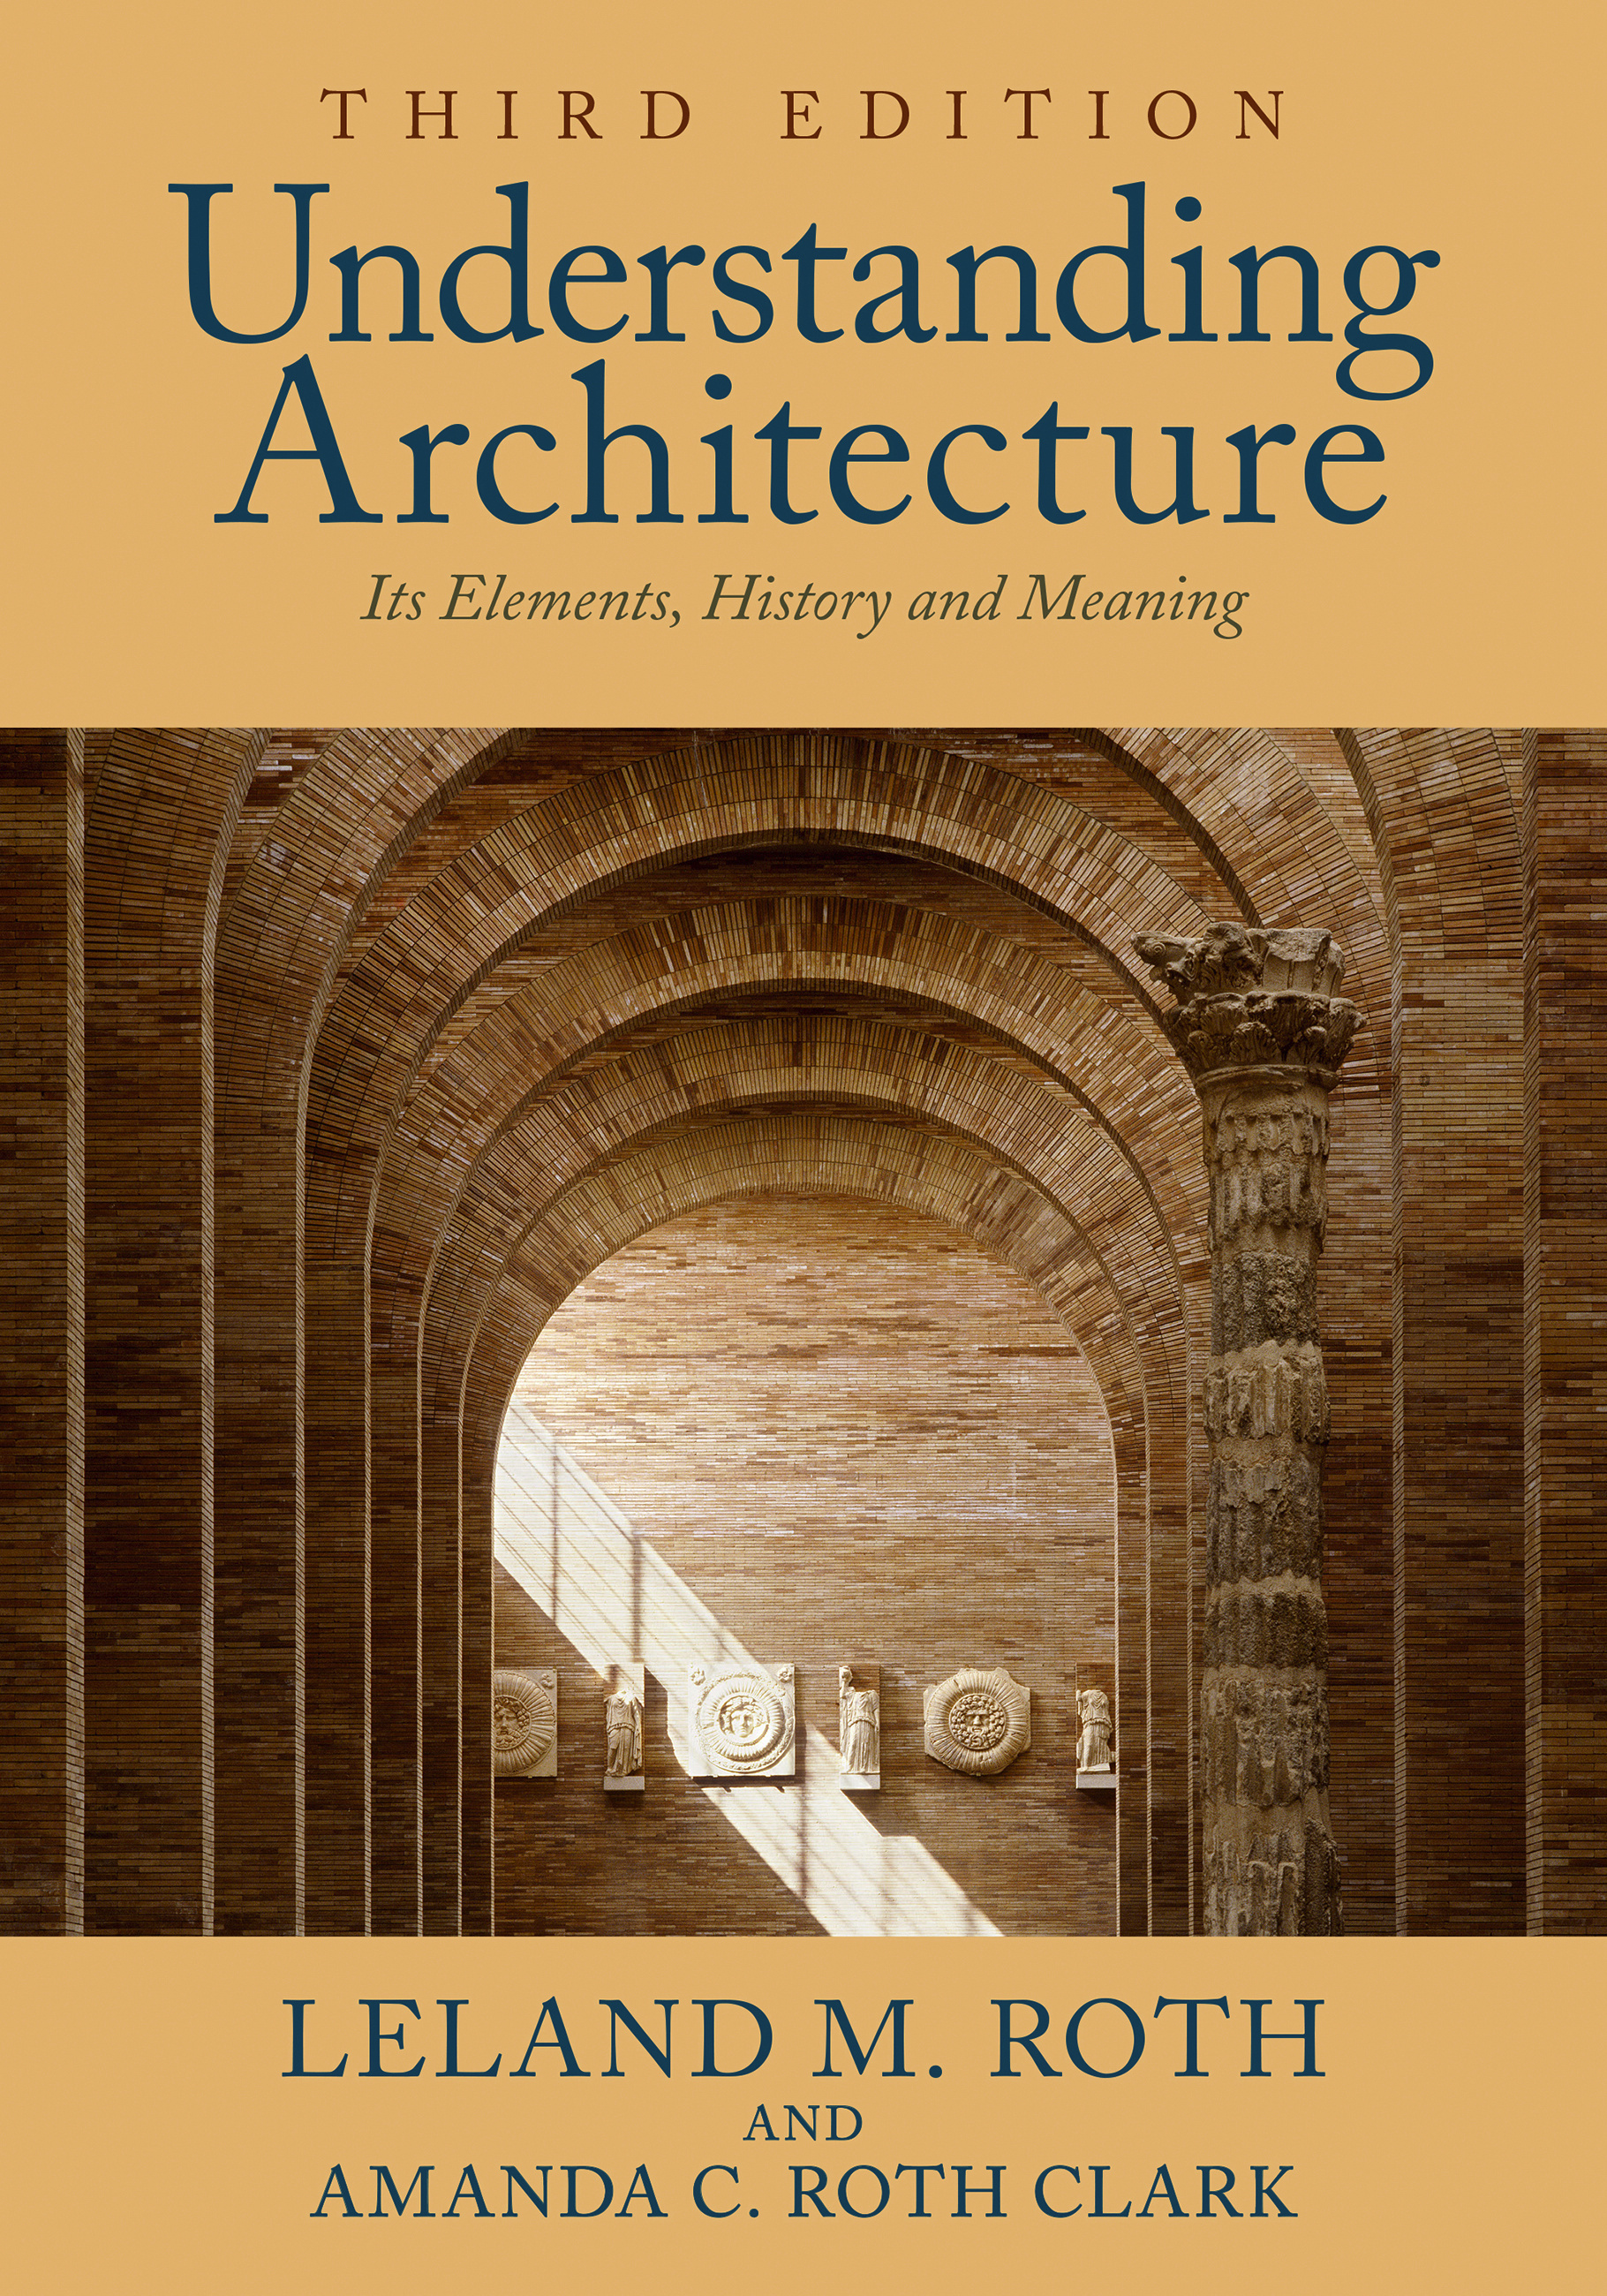 Understanding Architecture by Leland M. Roth | Hachette ...